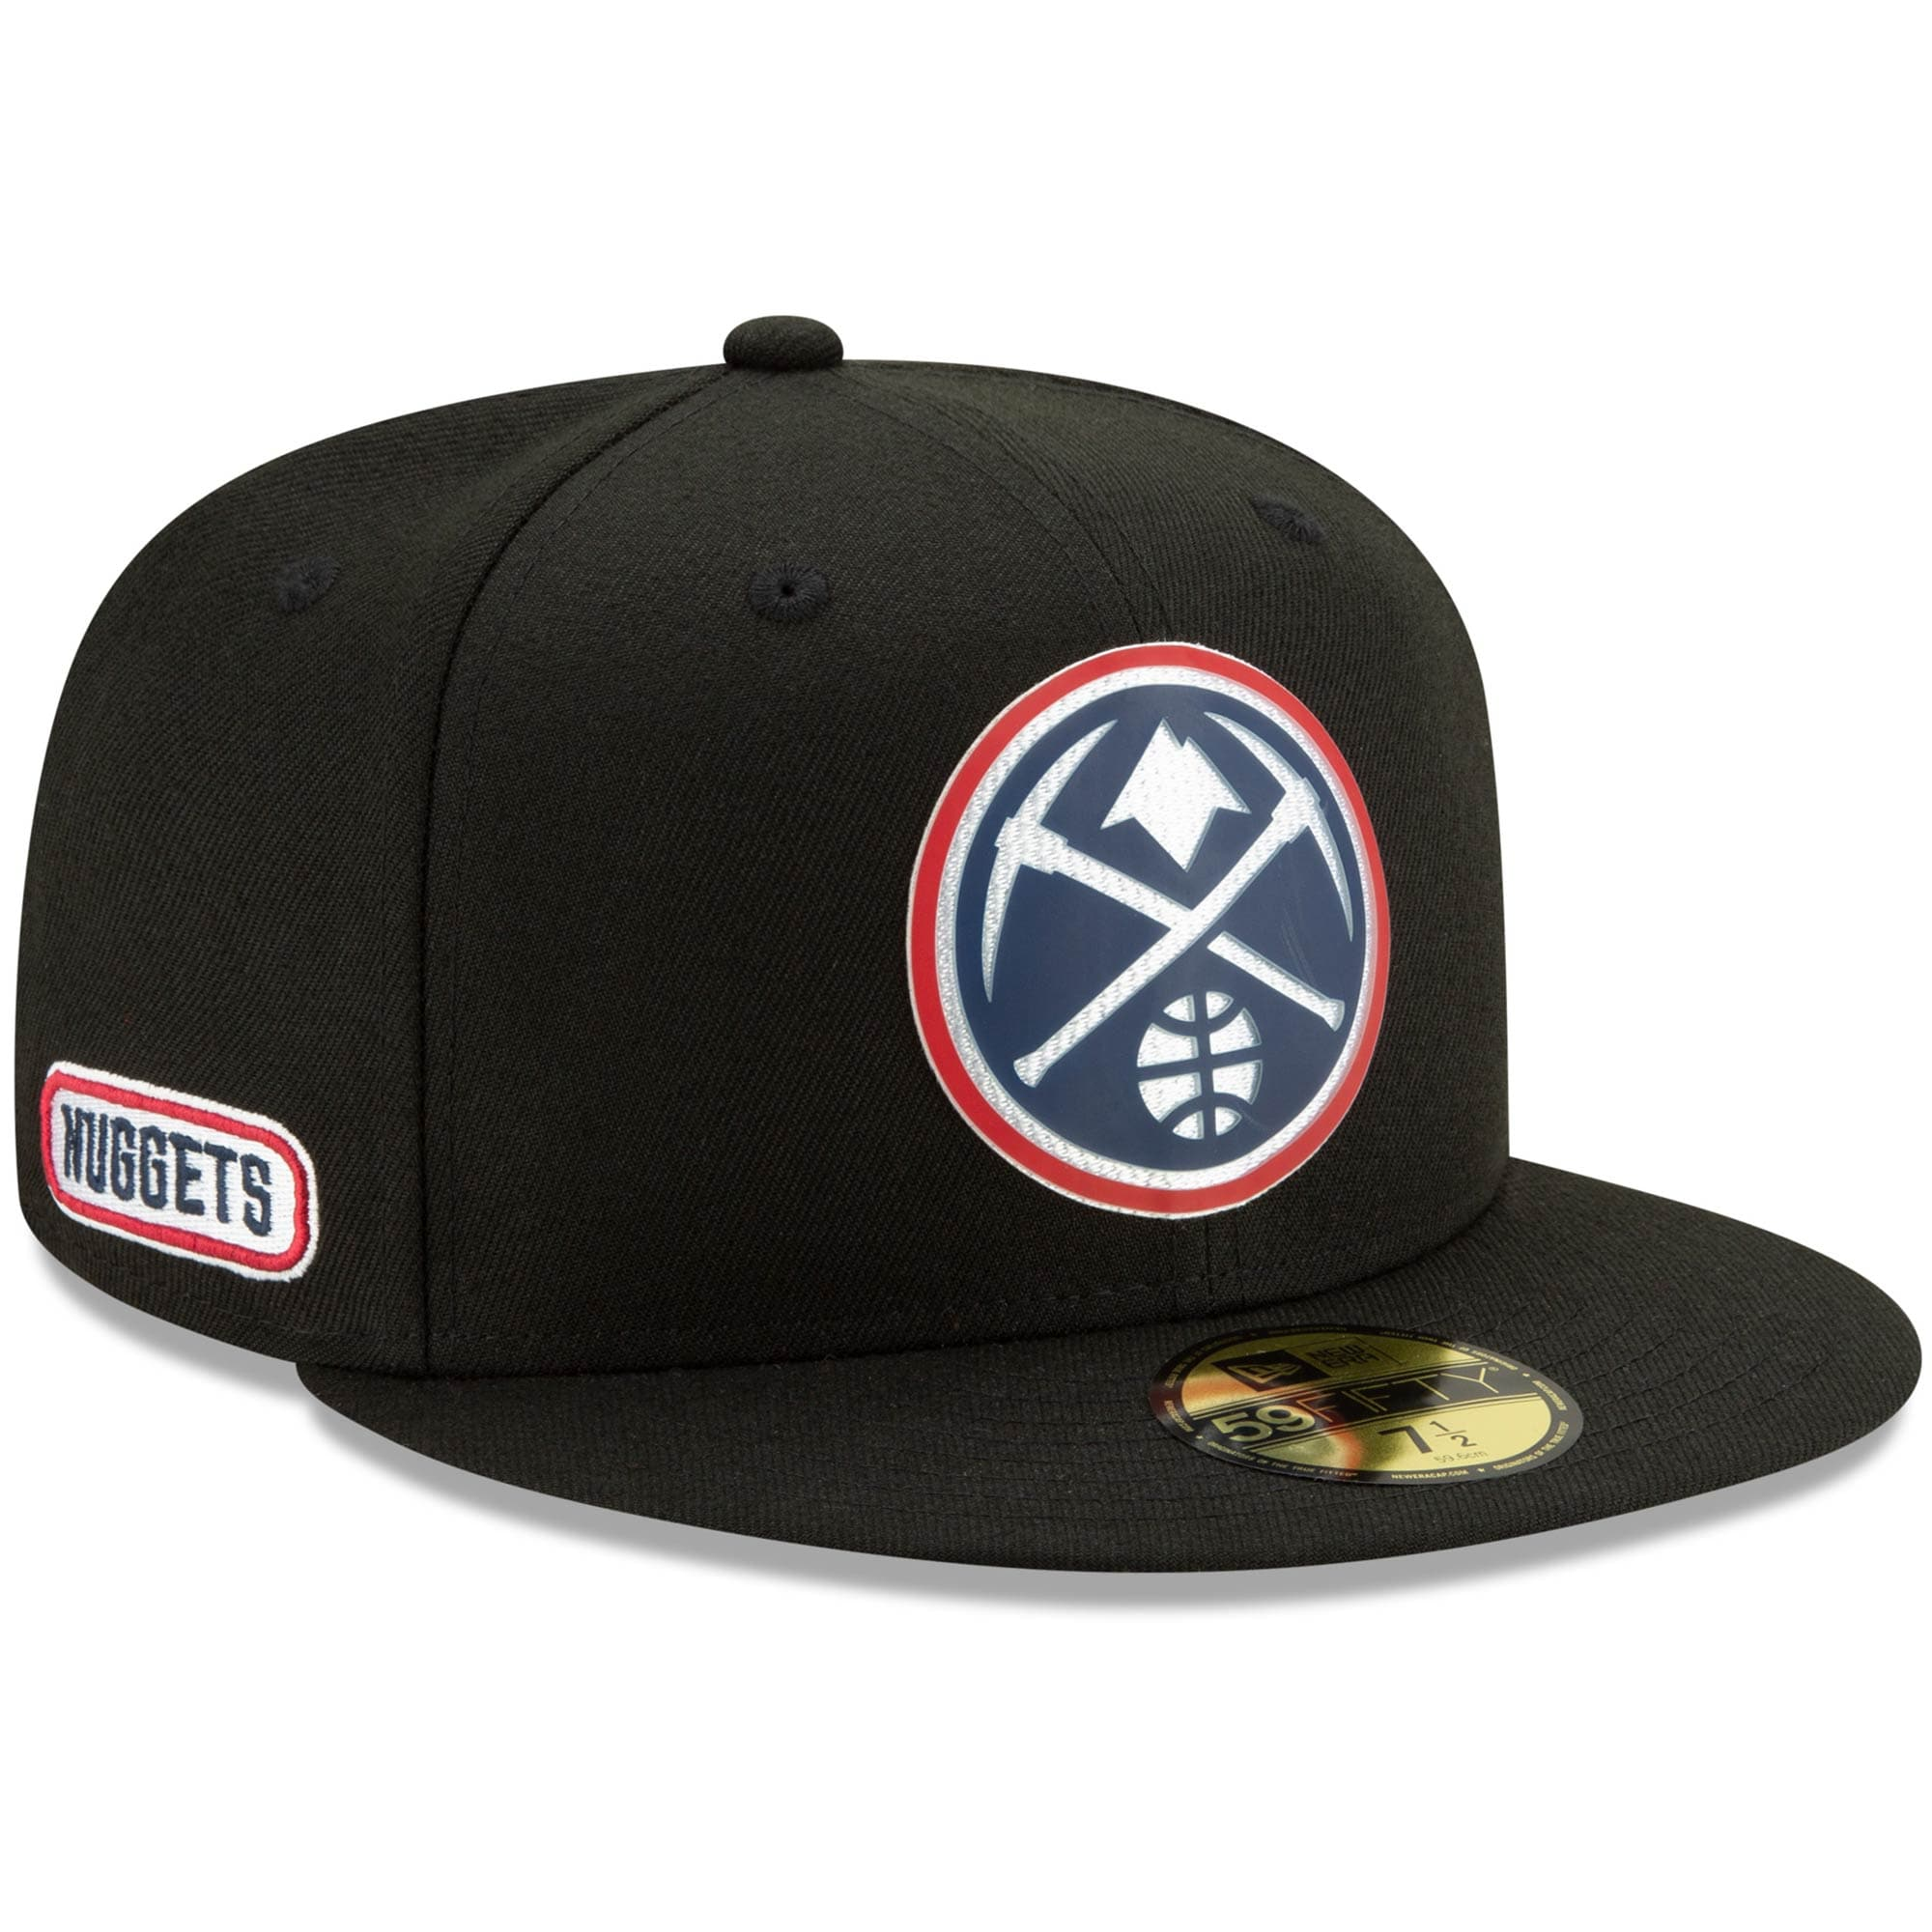 Denver Nuggets New Era Official Back Half 59FIFTY Fitted Hat - Black